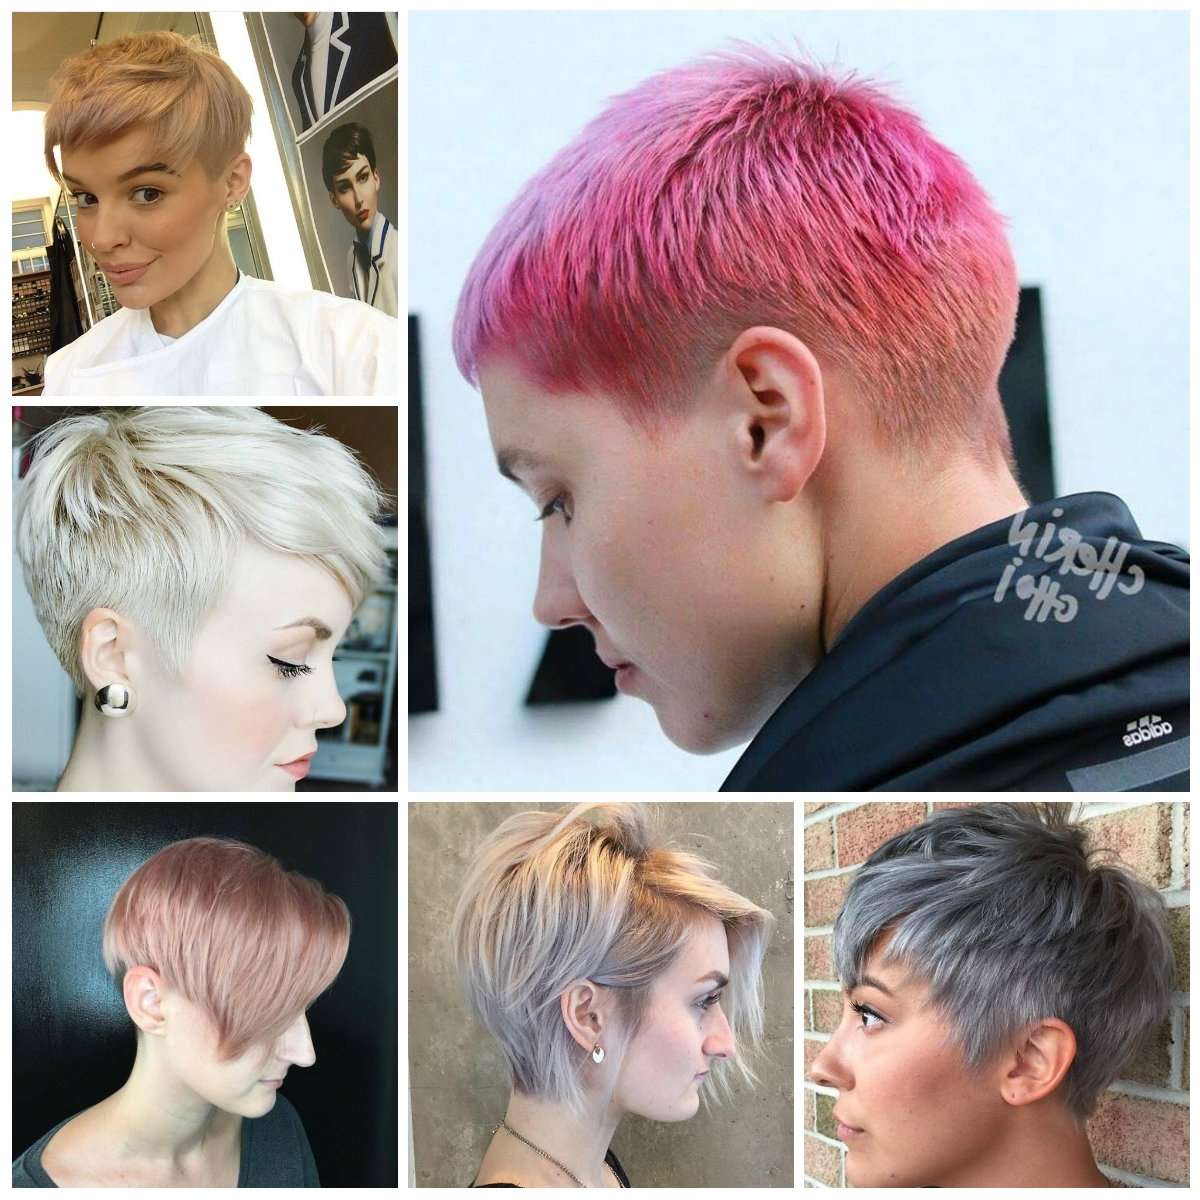 Edgy Pixie Haircuts For 2017 | New Haircuts To Try For 2018 In Current Short Edgy Pixie Hairstyles (View 5 of 15)